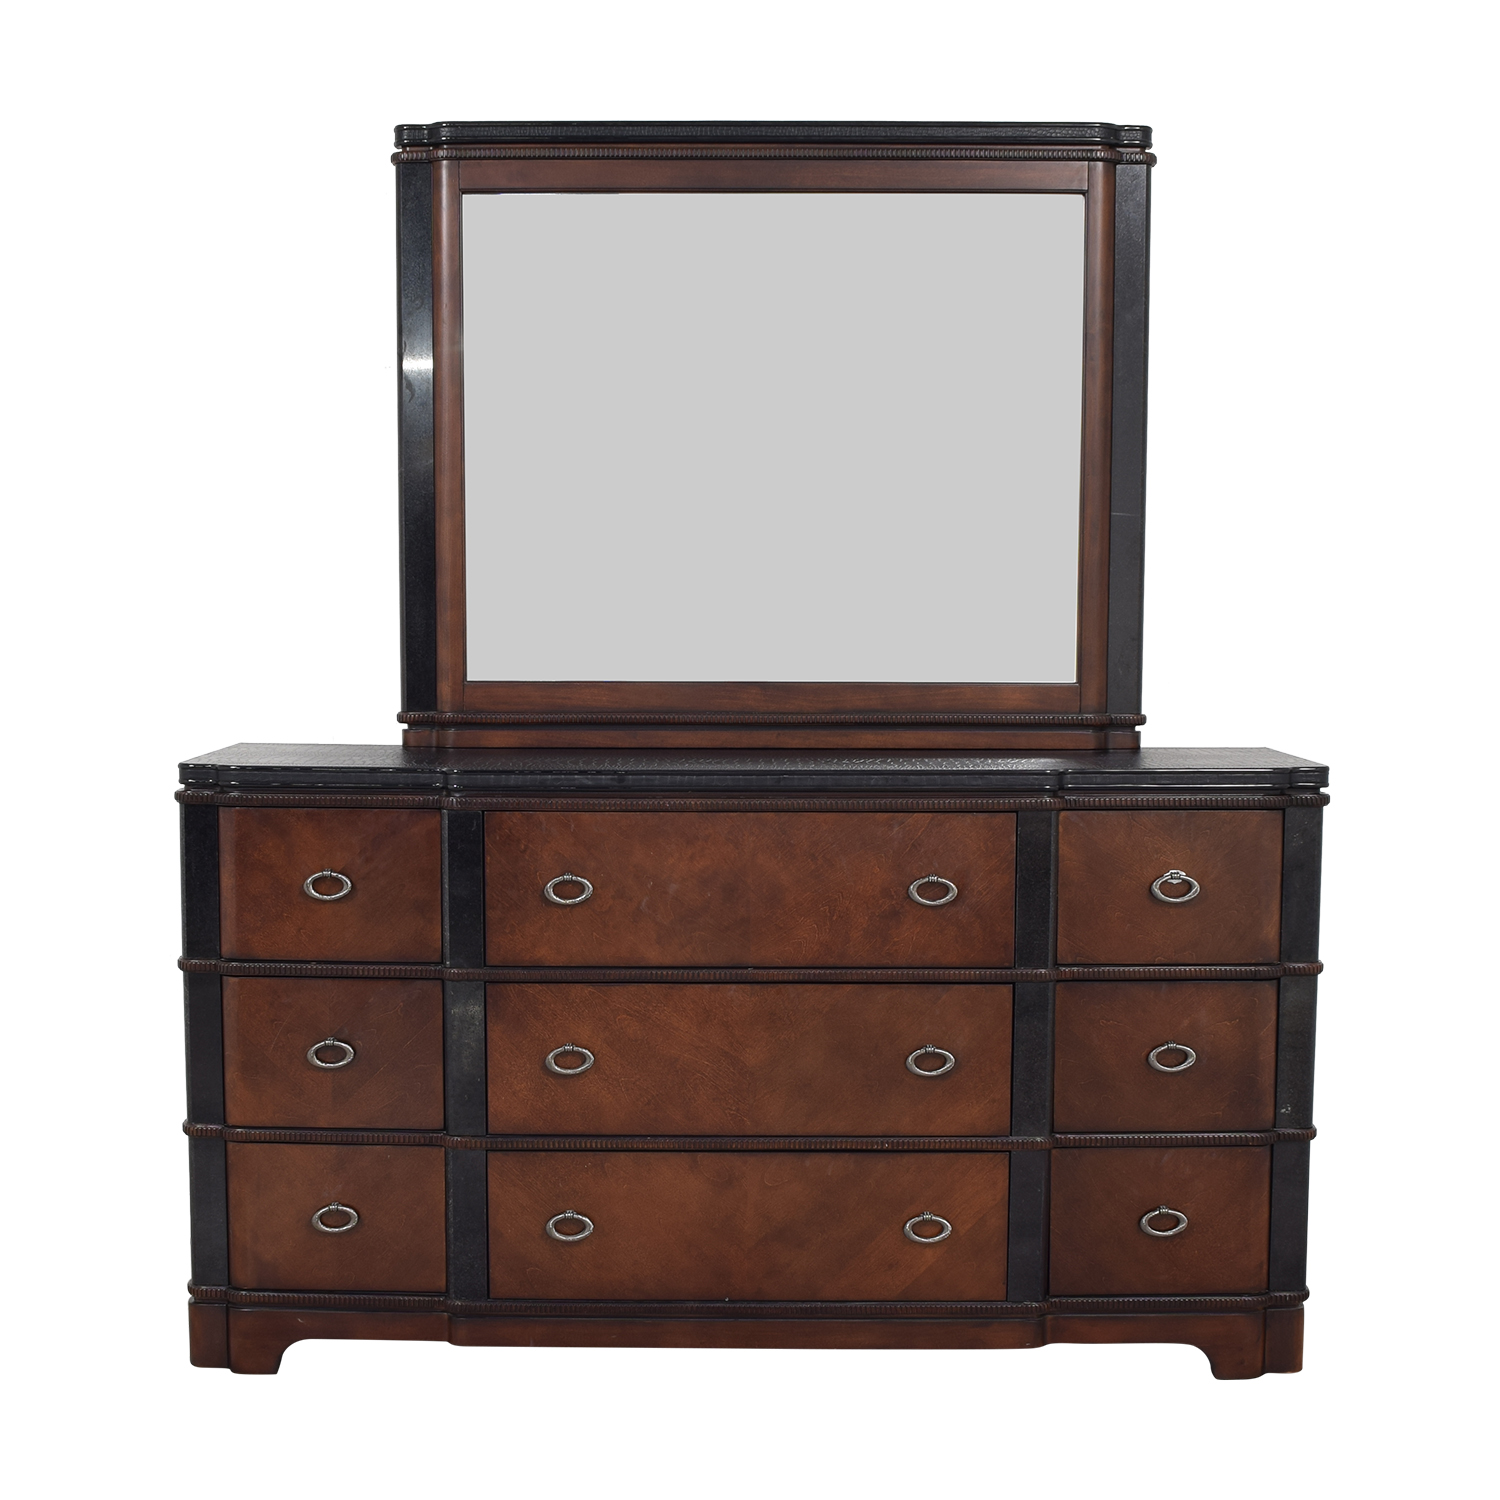 Raymour & Flanigan Dundee Bedroom Dresser with Mirror / Storage